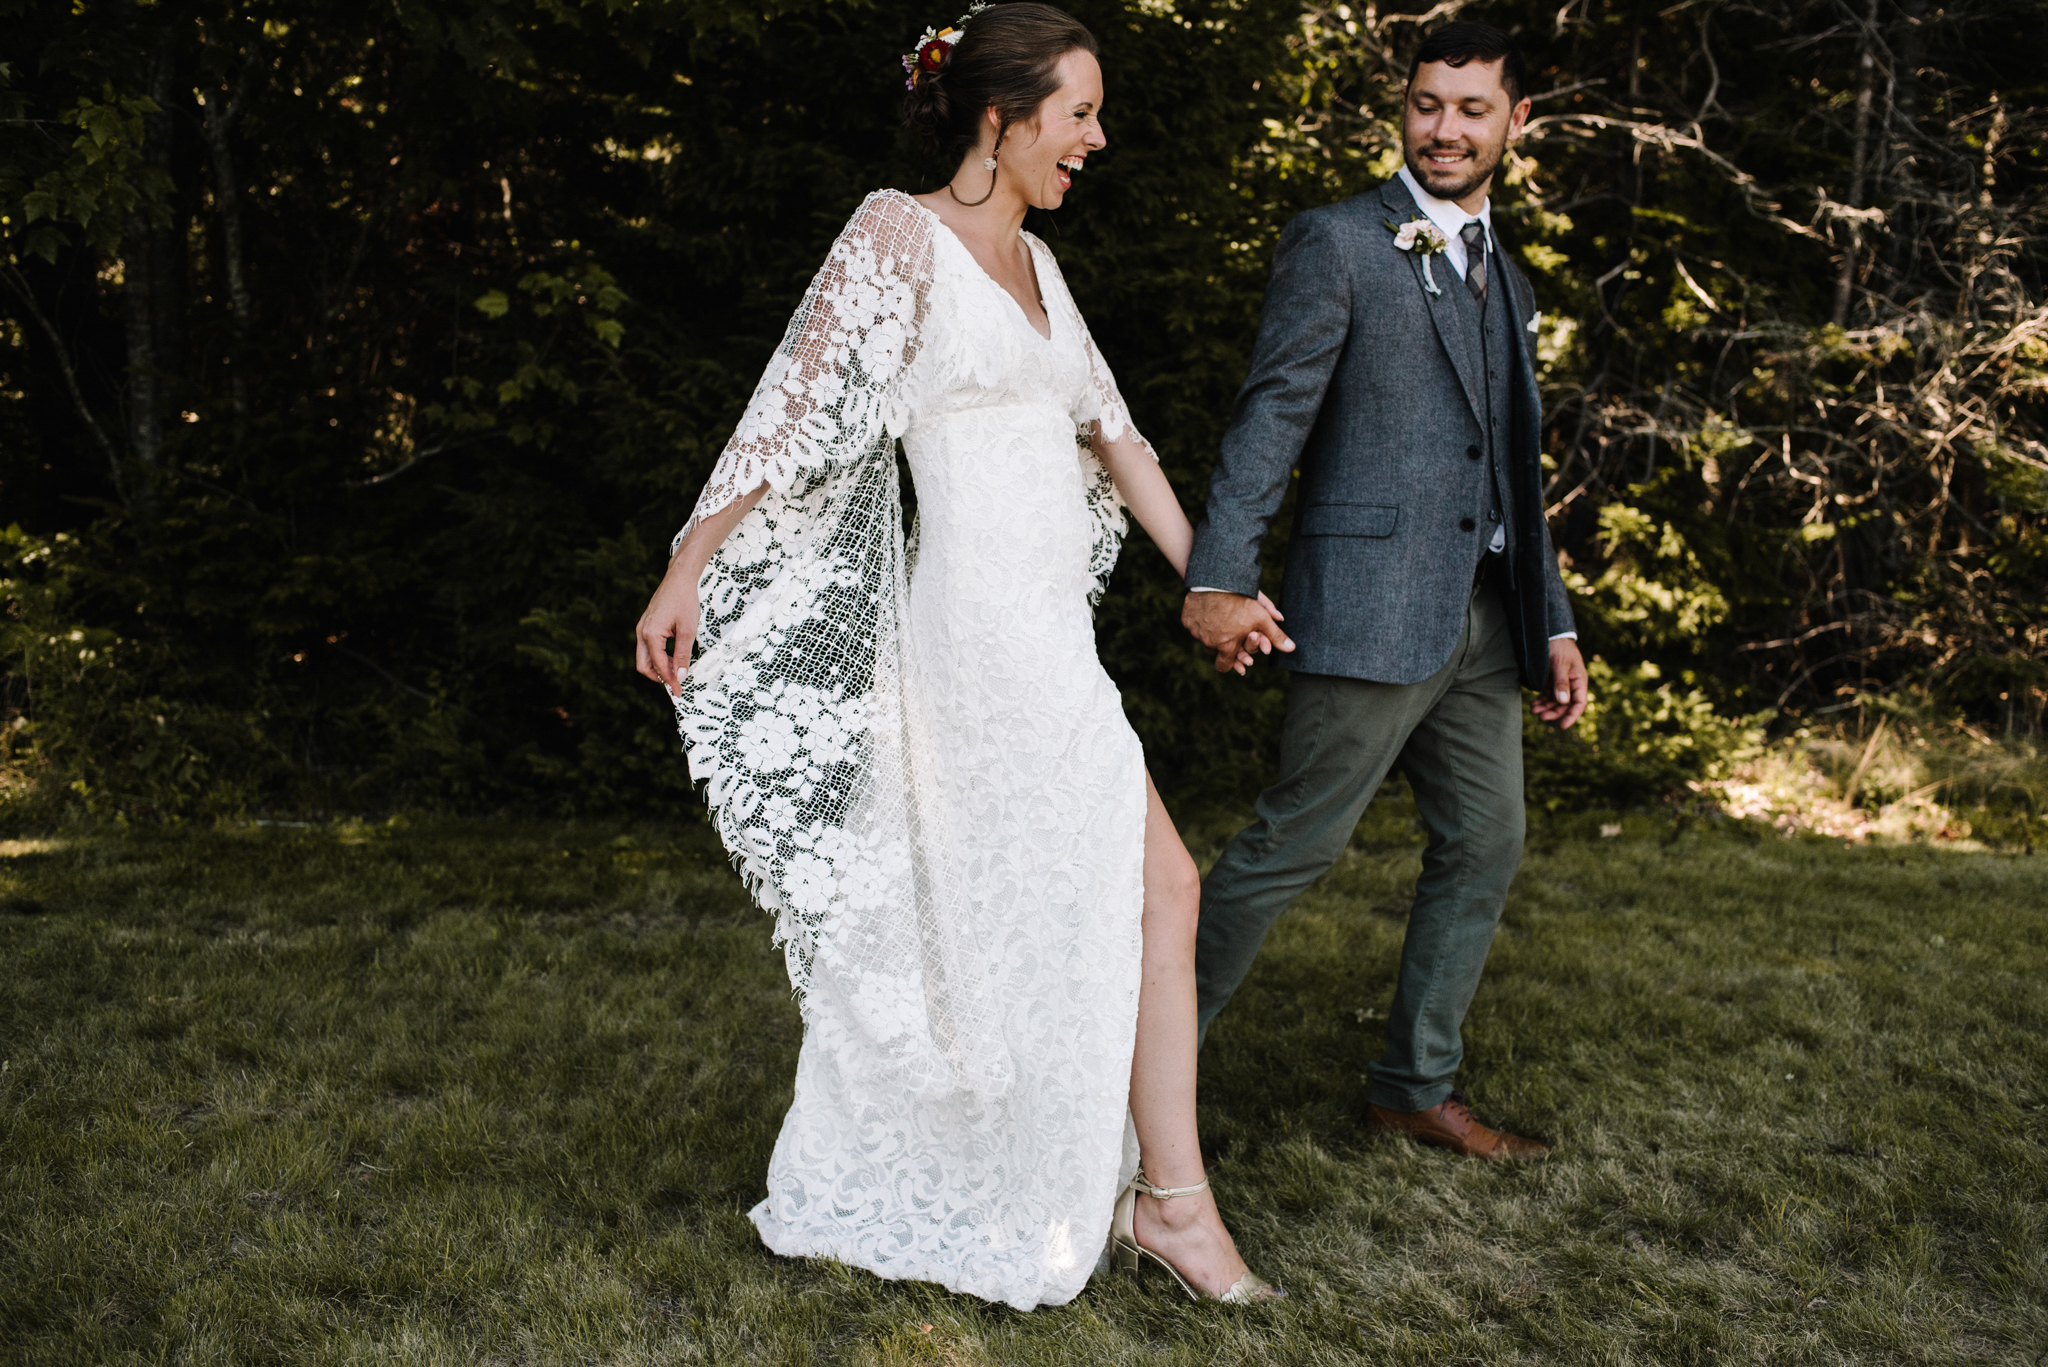 Shenandoah National Park Elopement Wedding Photographer and Planner_111.jpg